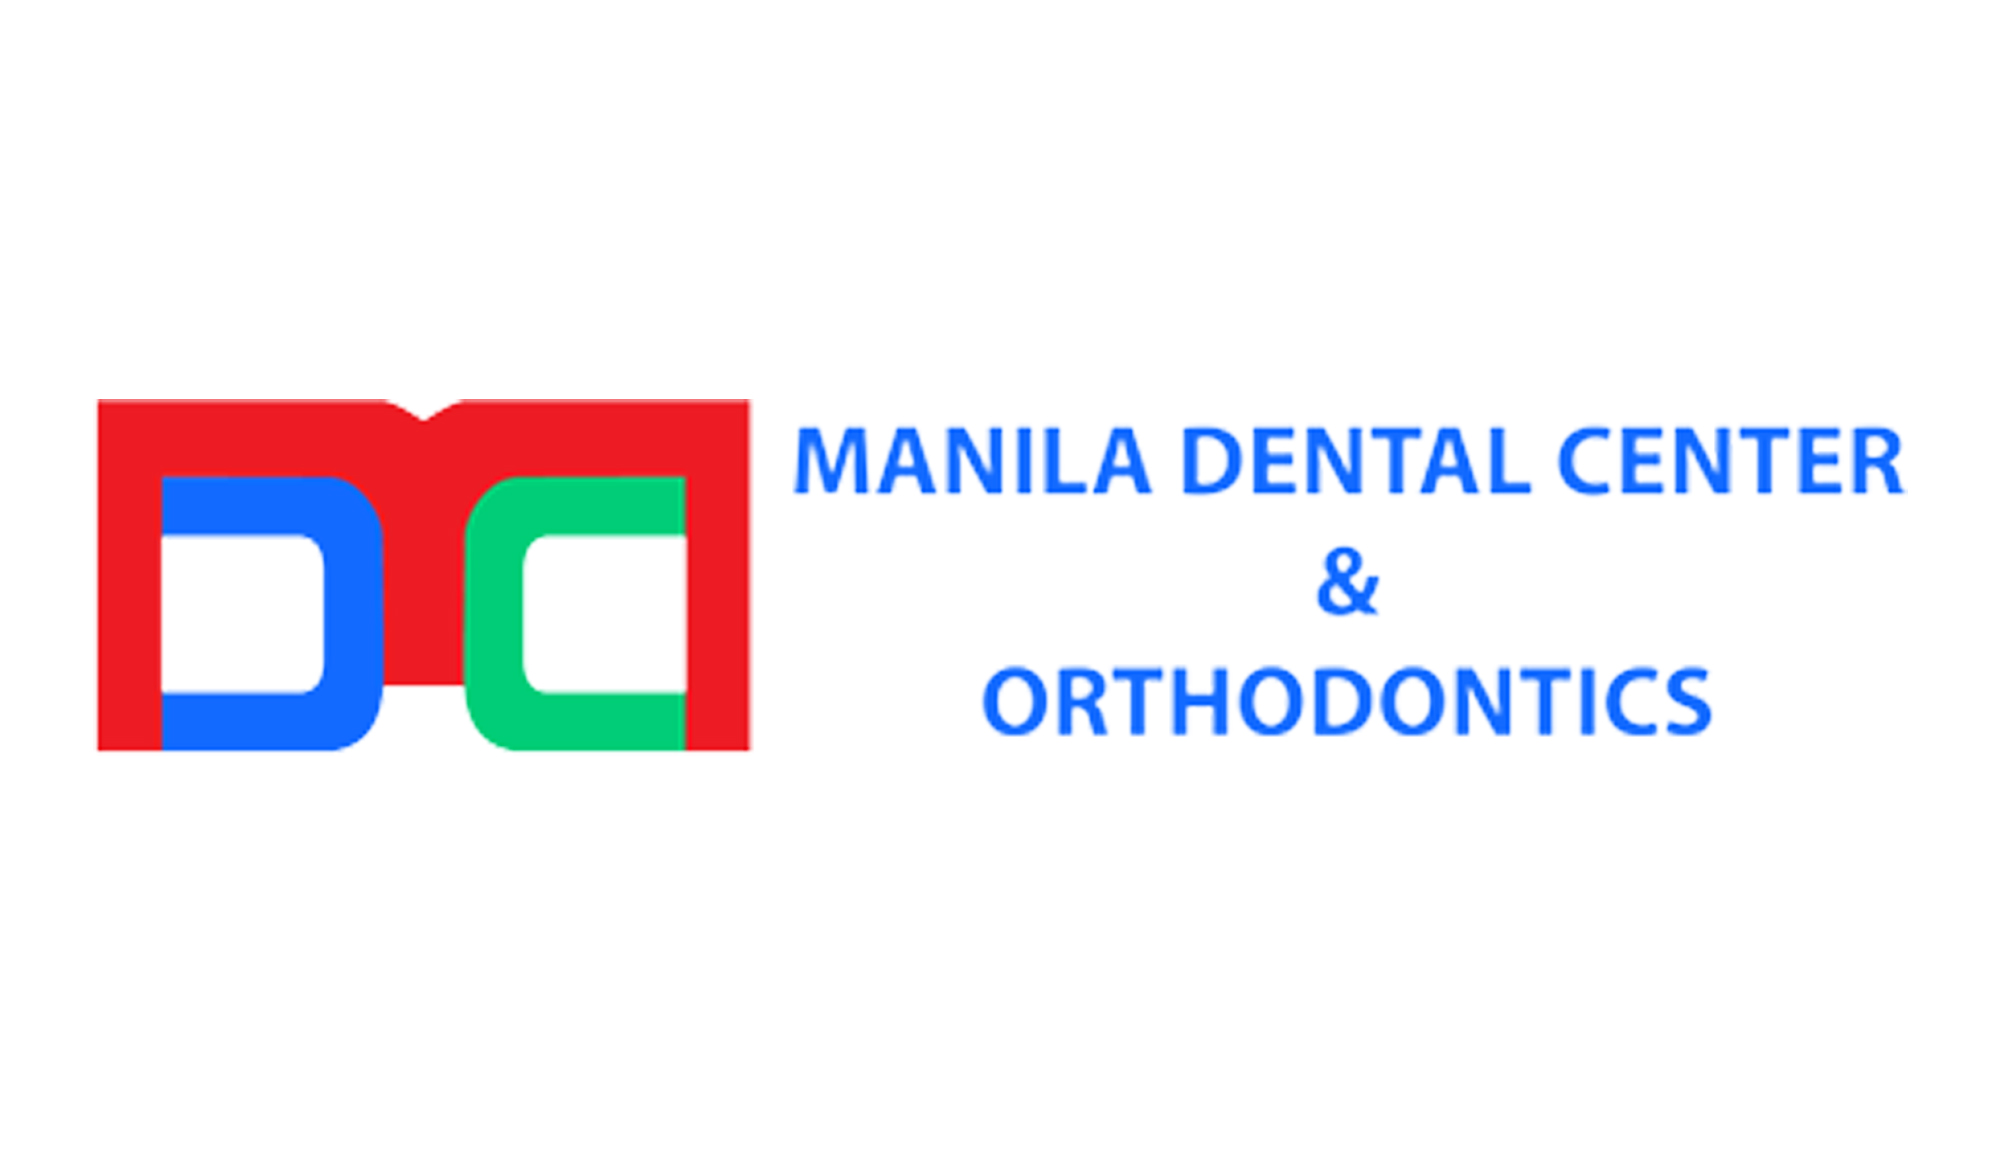 Manila Dental Center logo